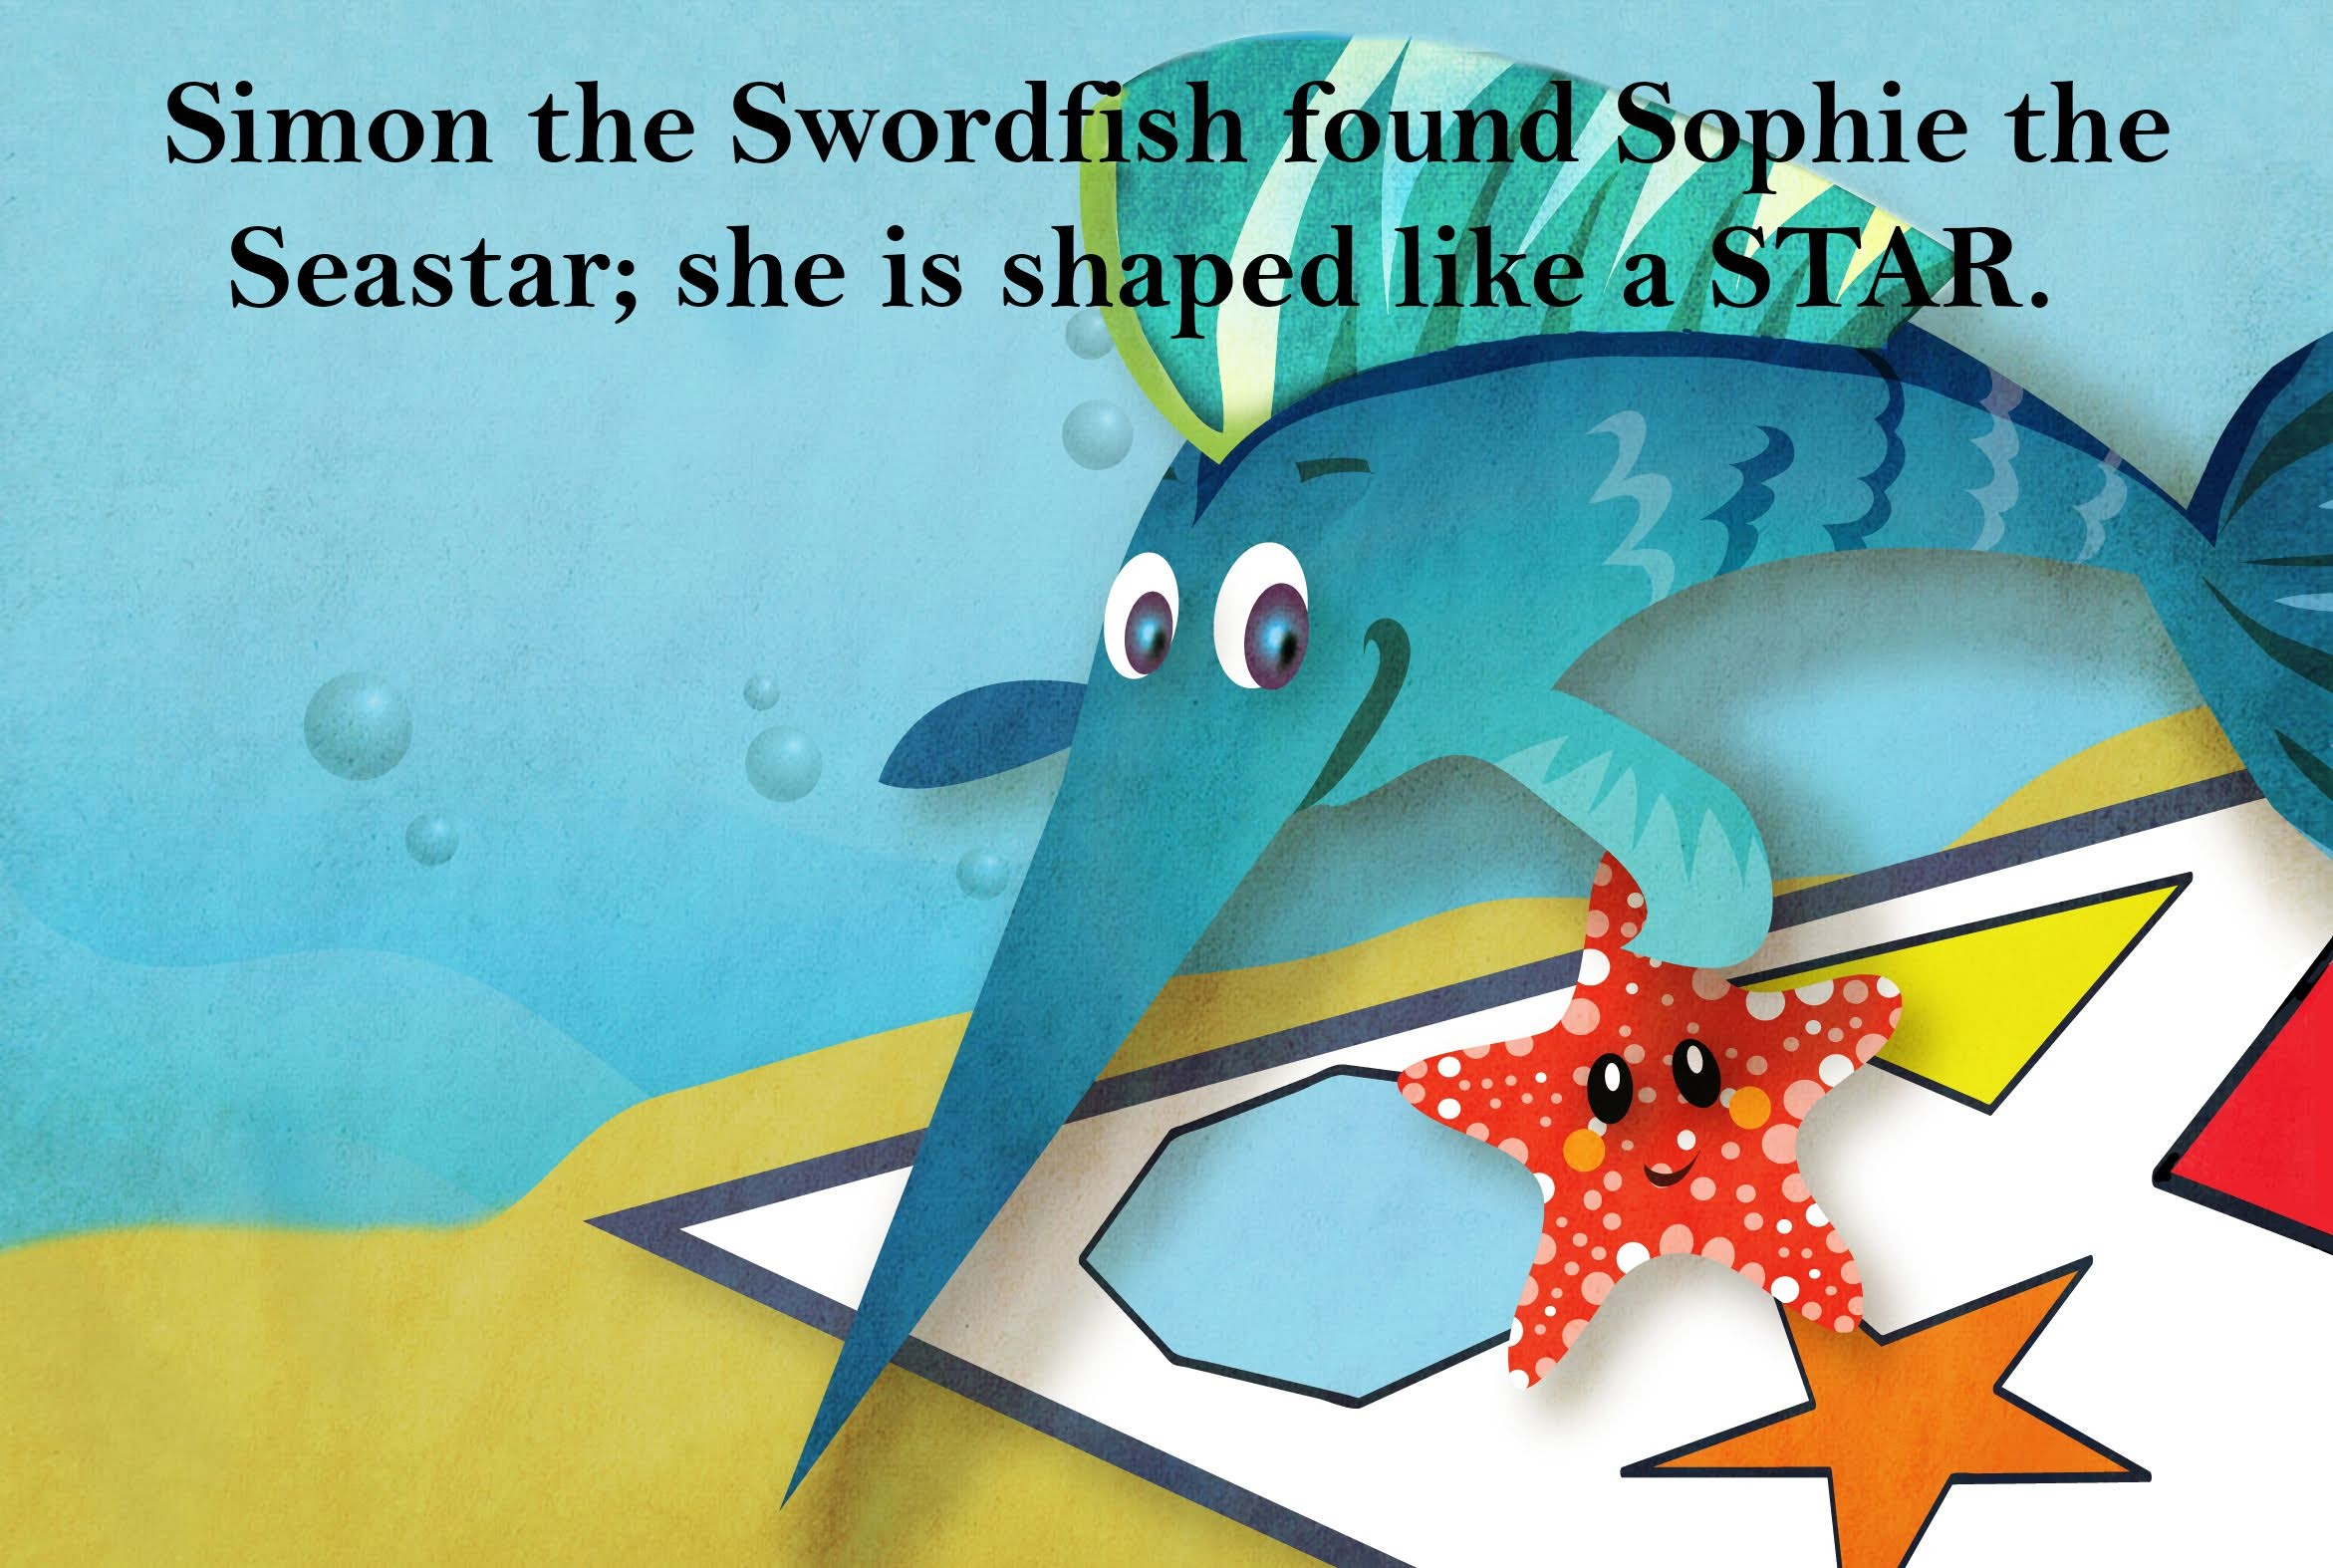 slide 3 Books About Octopus for Preschoolers - Oliver's Birthday, by Bonnie Lady Lee. [Excerpt] Simon the Swordfish found Sophie the Seastar. She is shaped like a star.